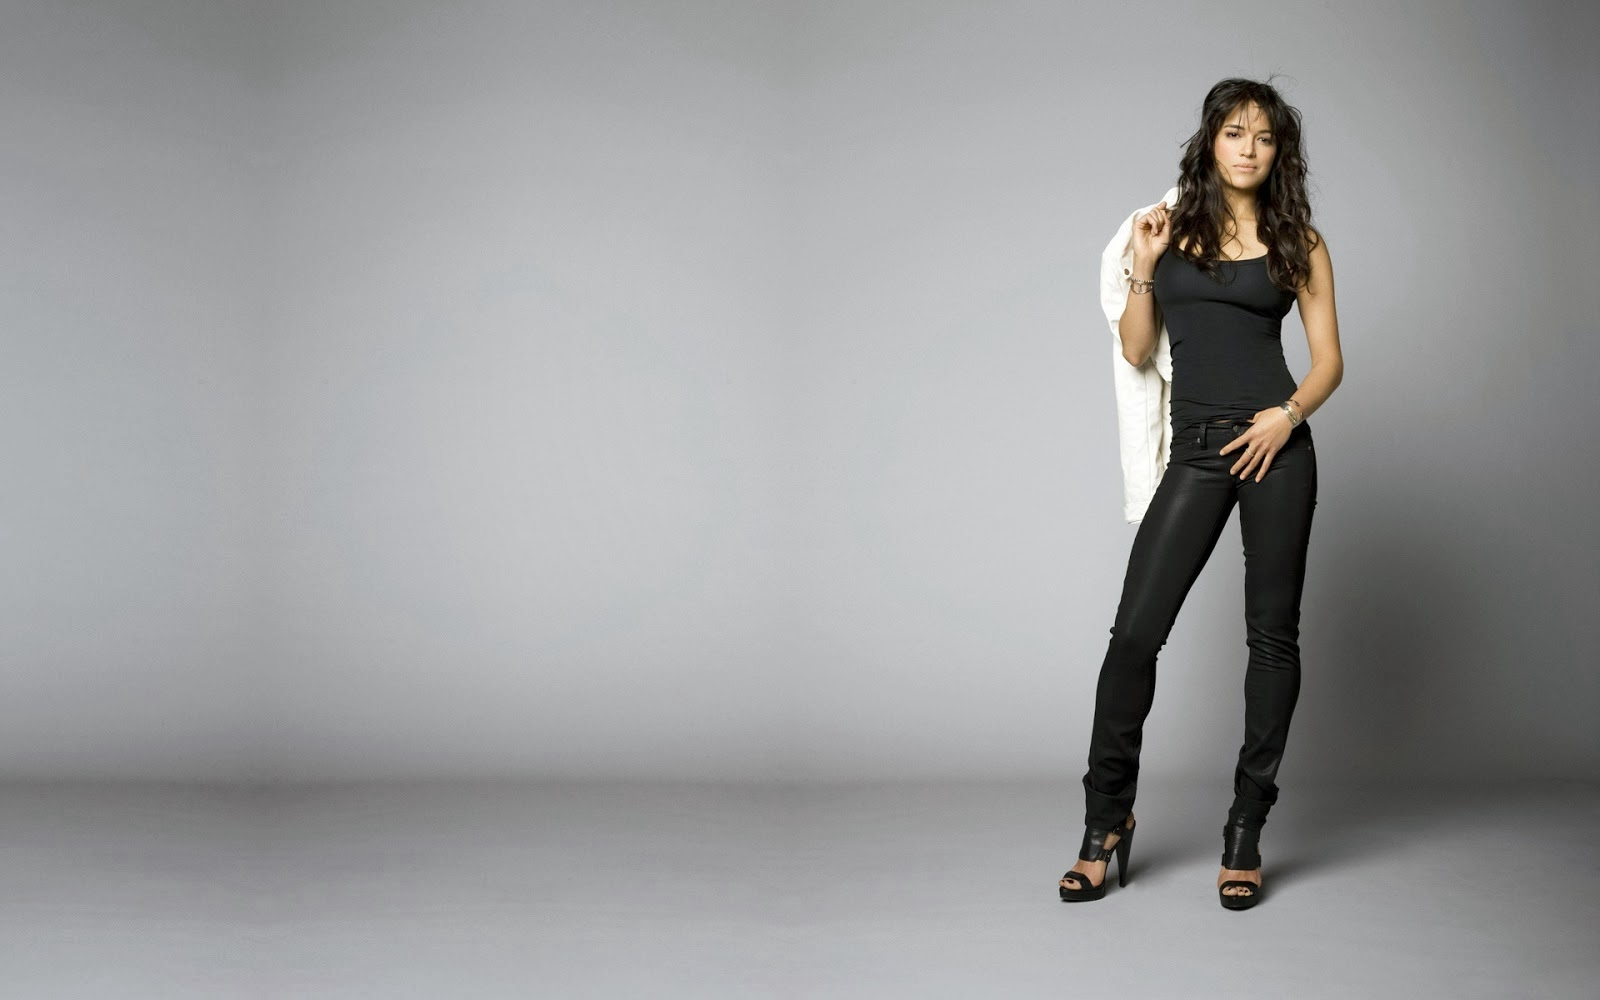 Michelle Rodriguez in High Heels 12